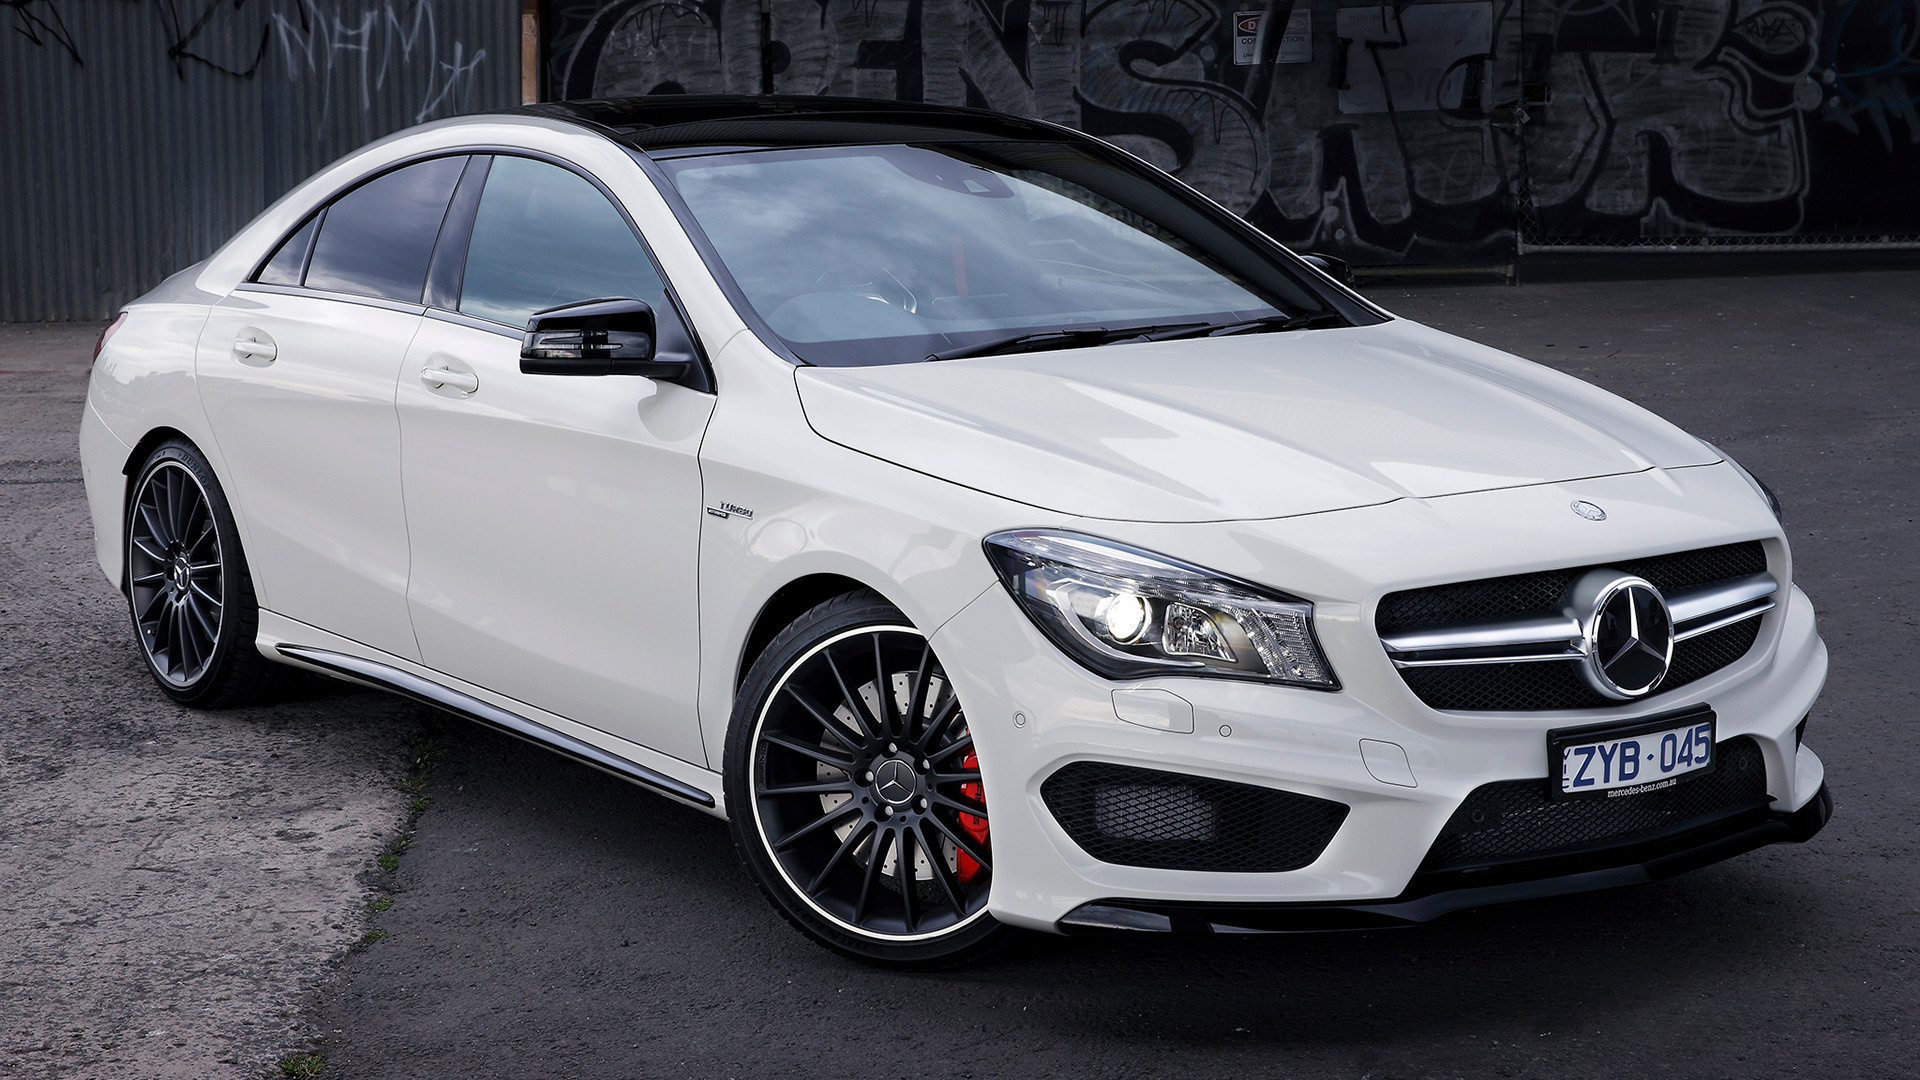 Genesis Car Wallpaper Mercedes Benz Cla 45 Amg 2013 Au Wallpapers And Hd